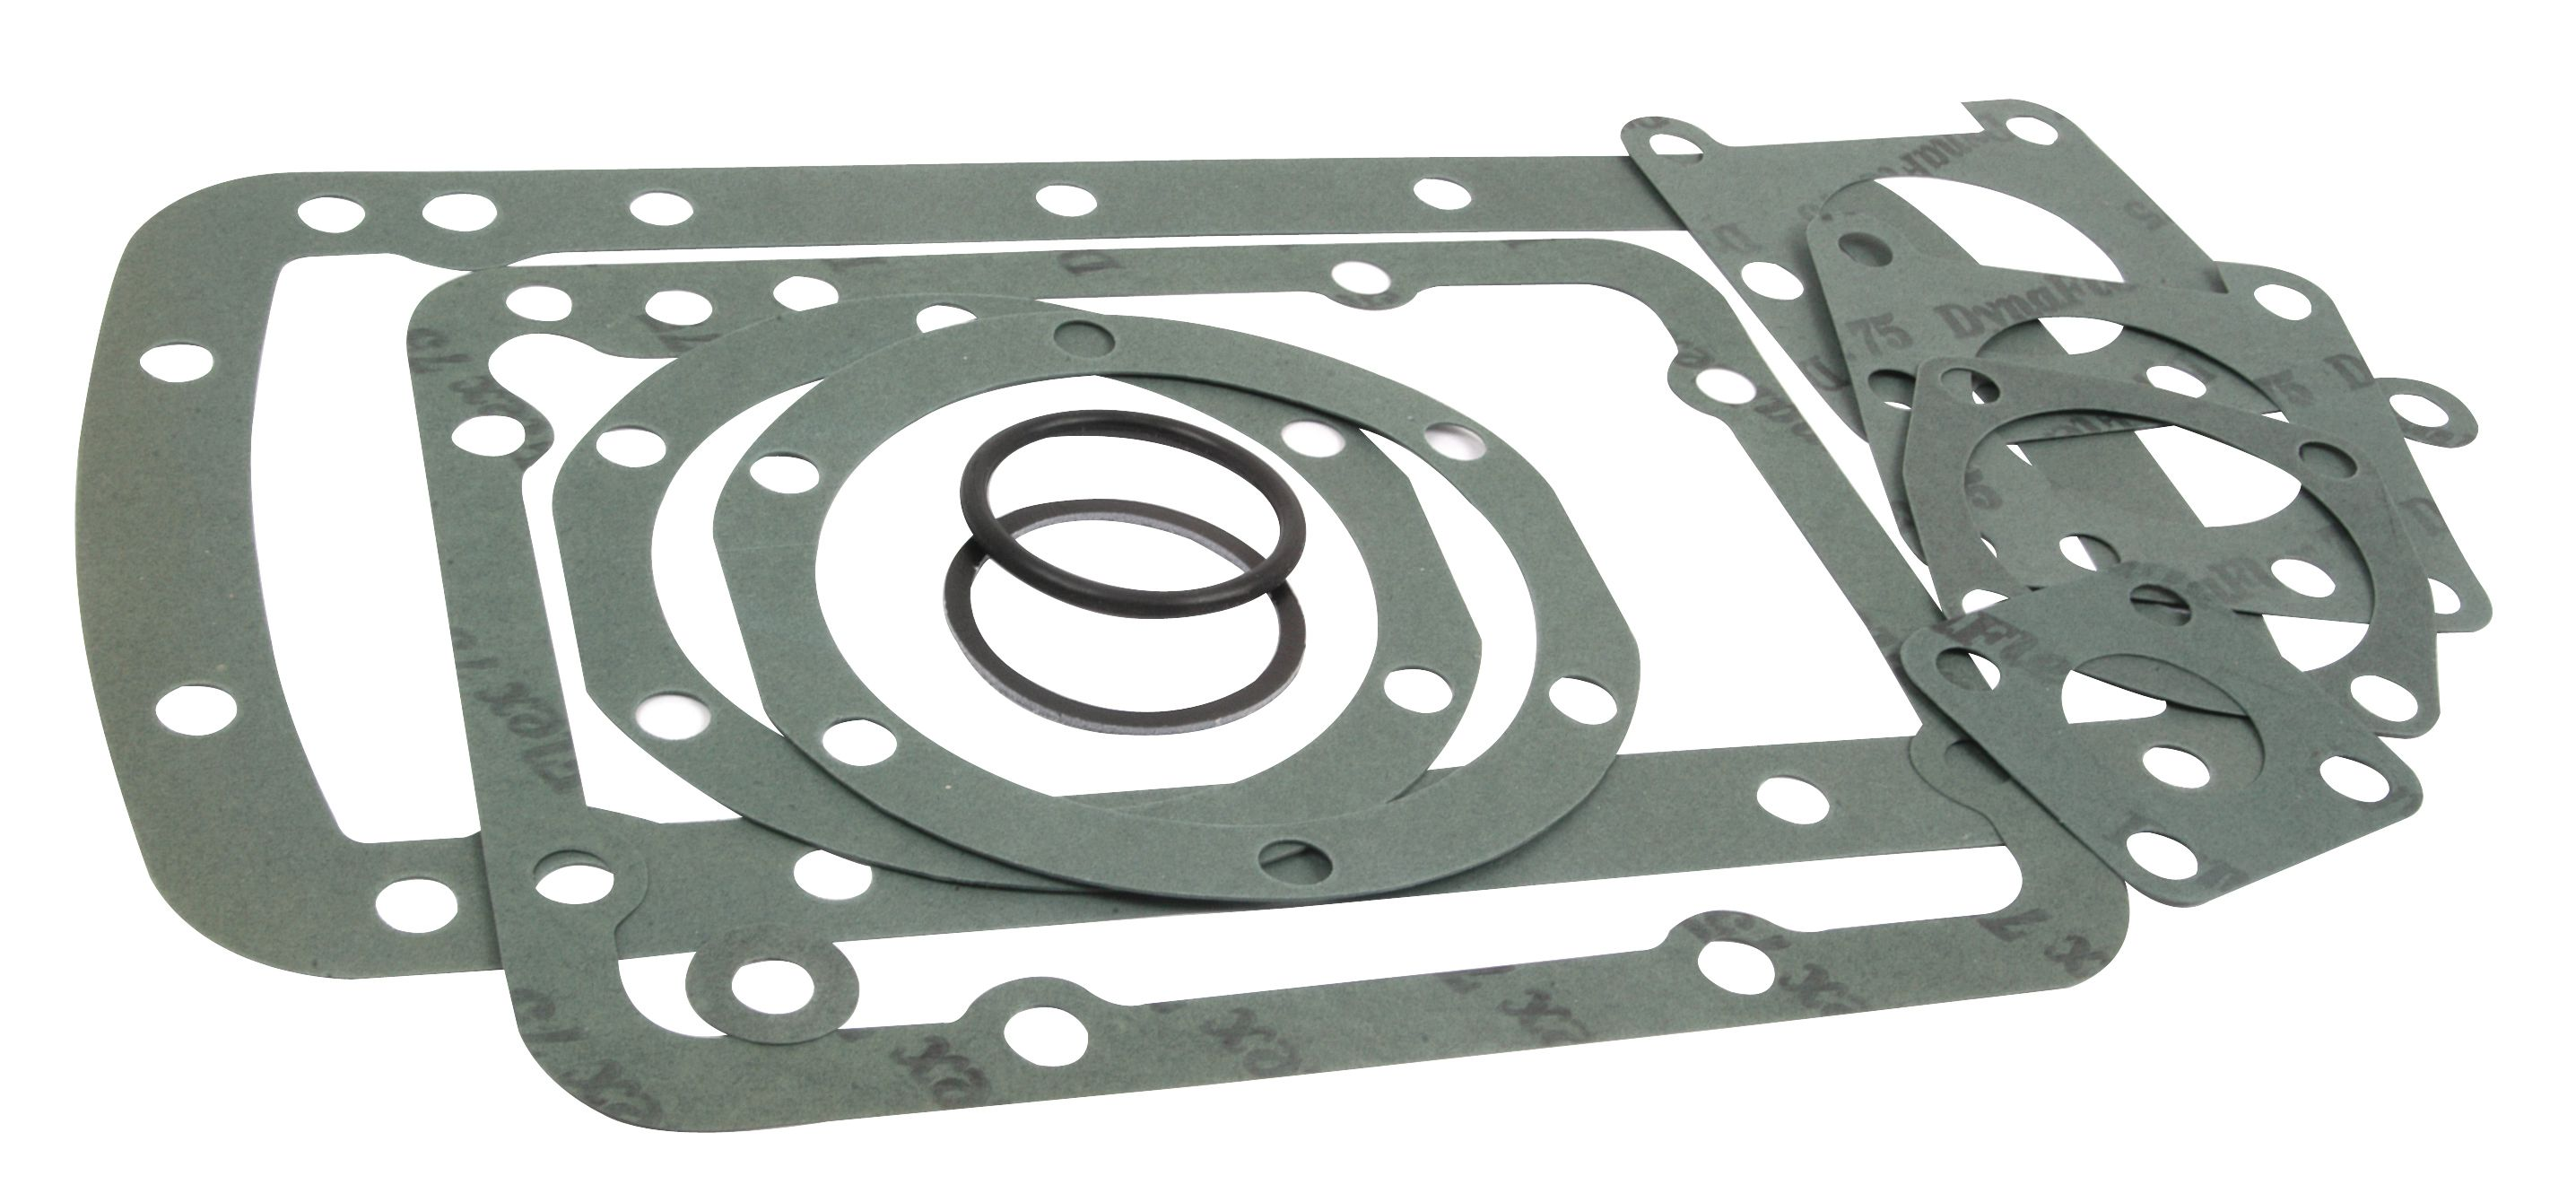 FORD NEW HOLLAND LIFT COVER REPAIR KIT 61504